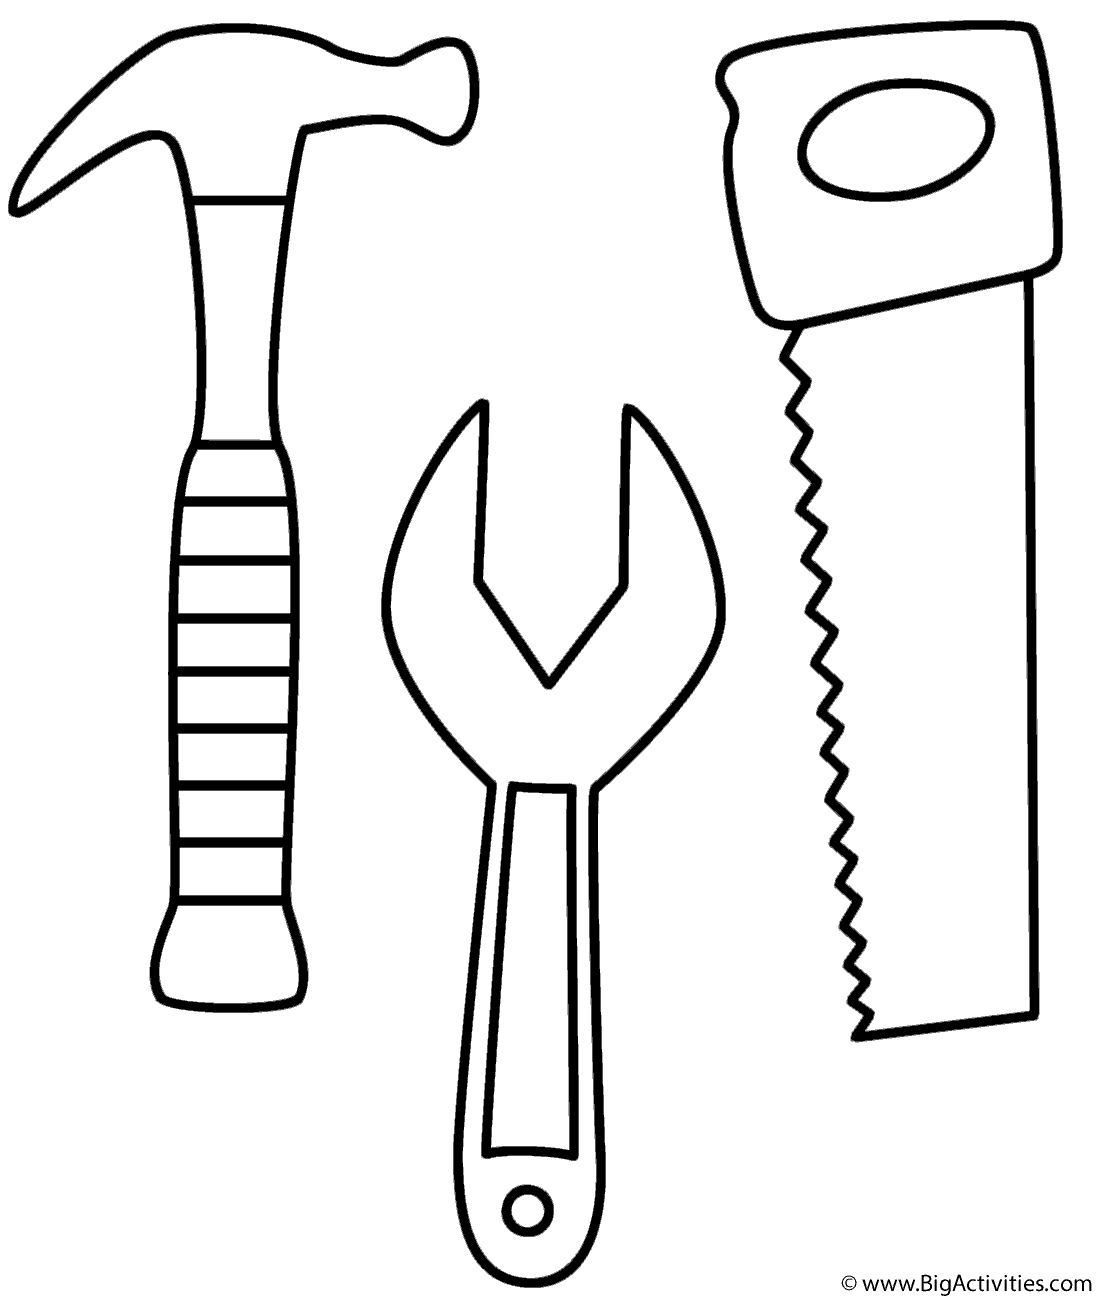 Hammer Saw And Wrench Coloring Page Labor Day